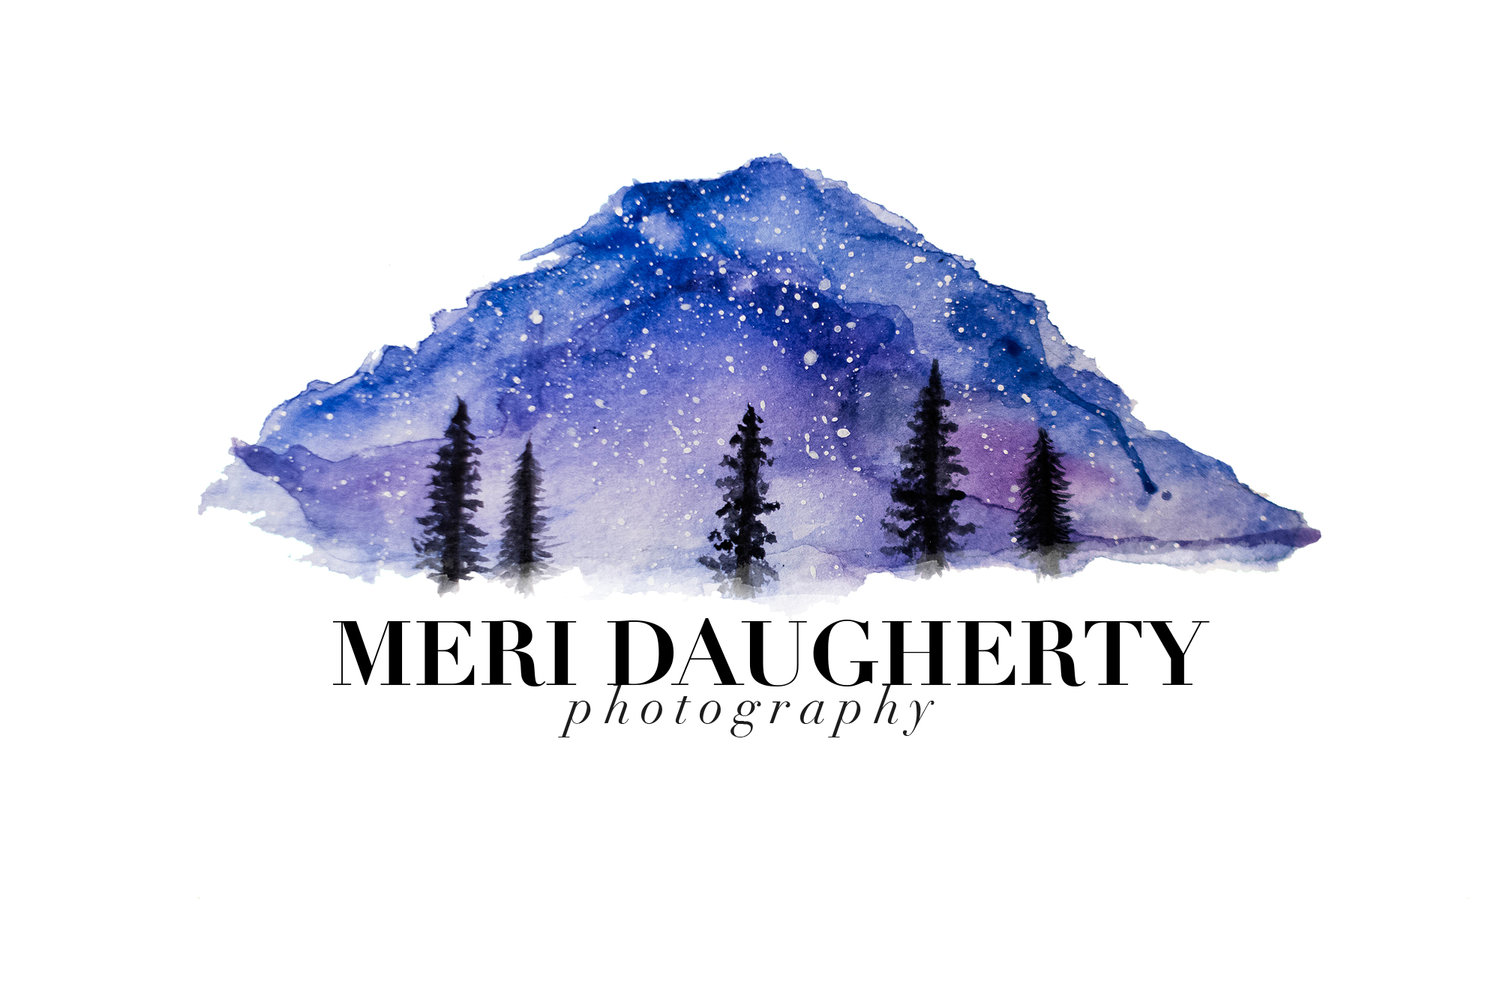 meri daugherty photography / atlanta fine art portraits